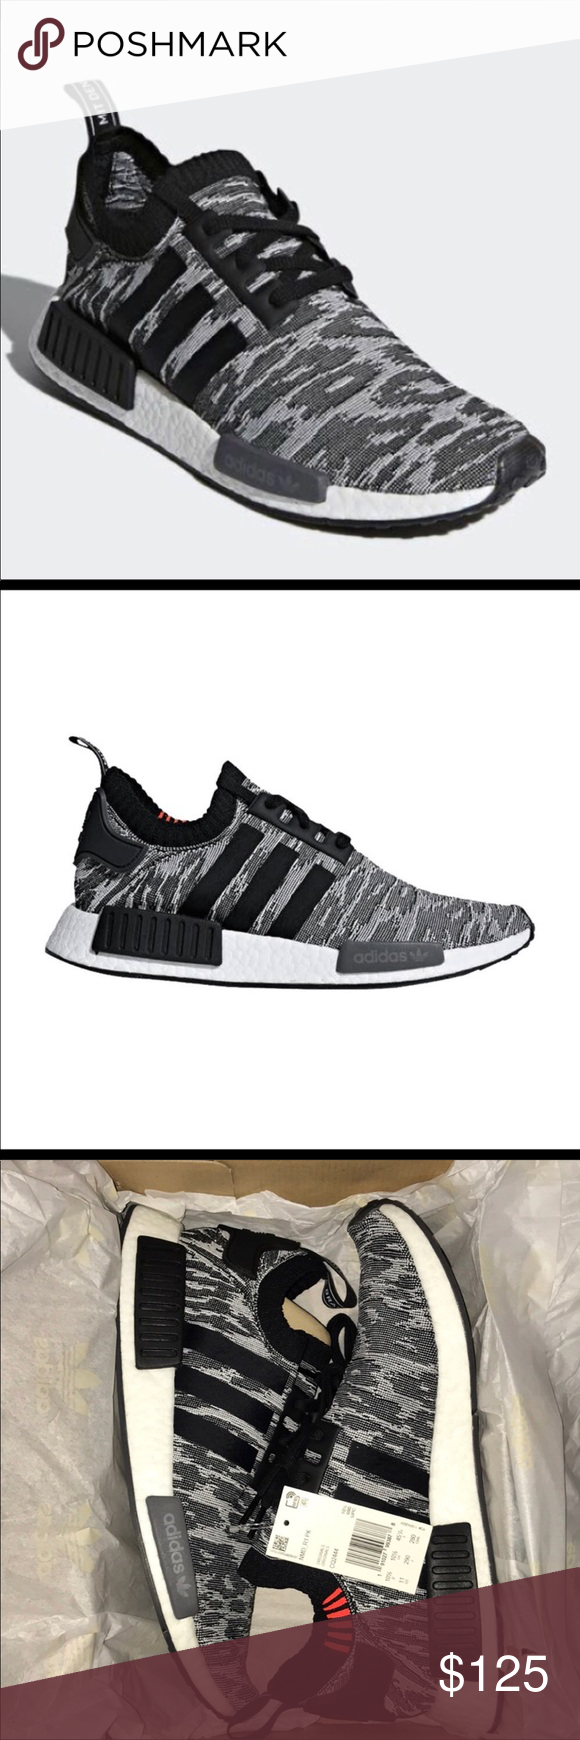 b0553eeceb081 Adidas NMD -R1 PK CQ2444 Born from an inspired past